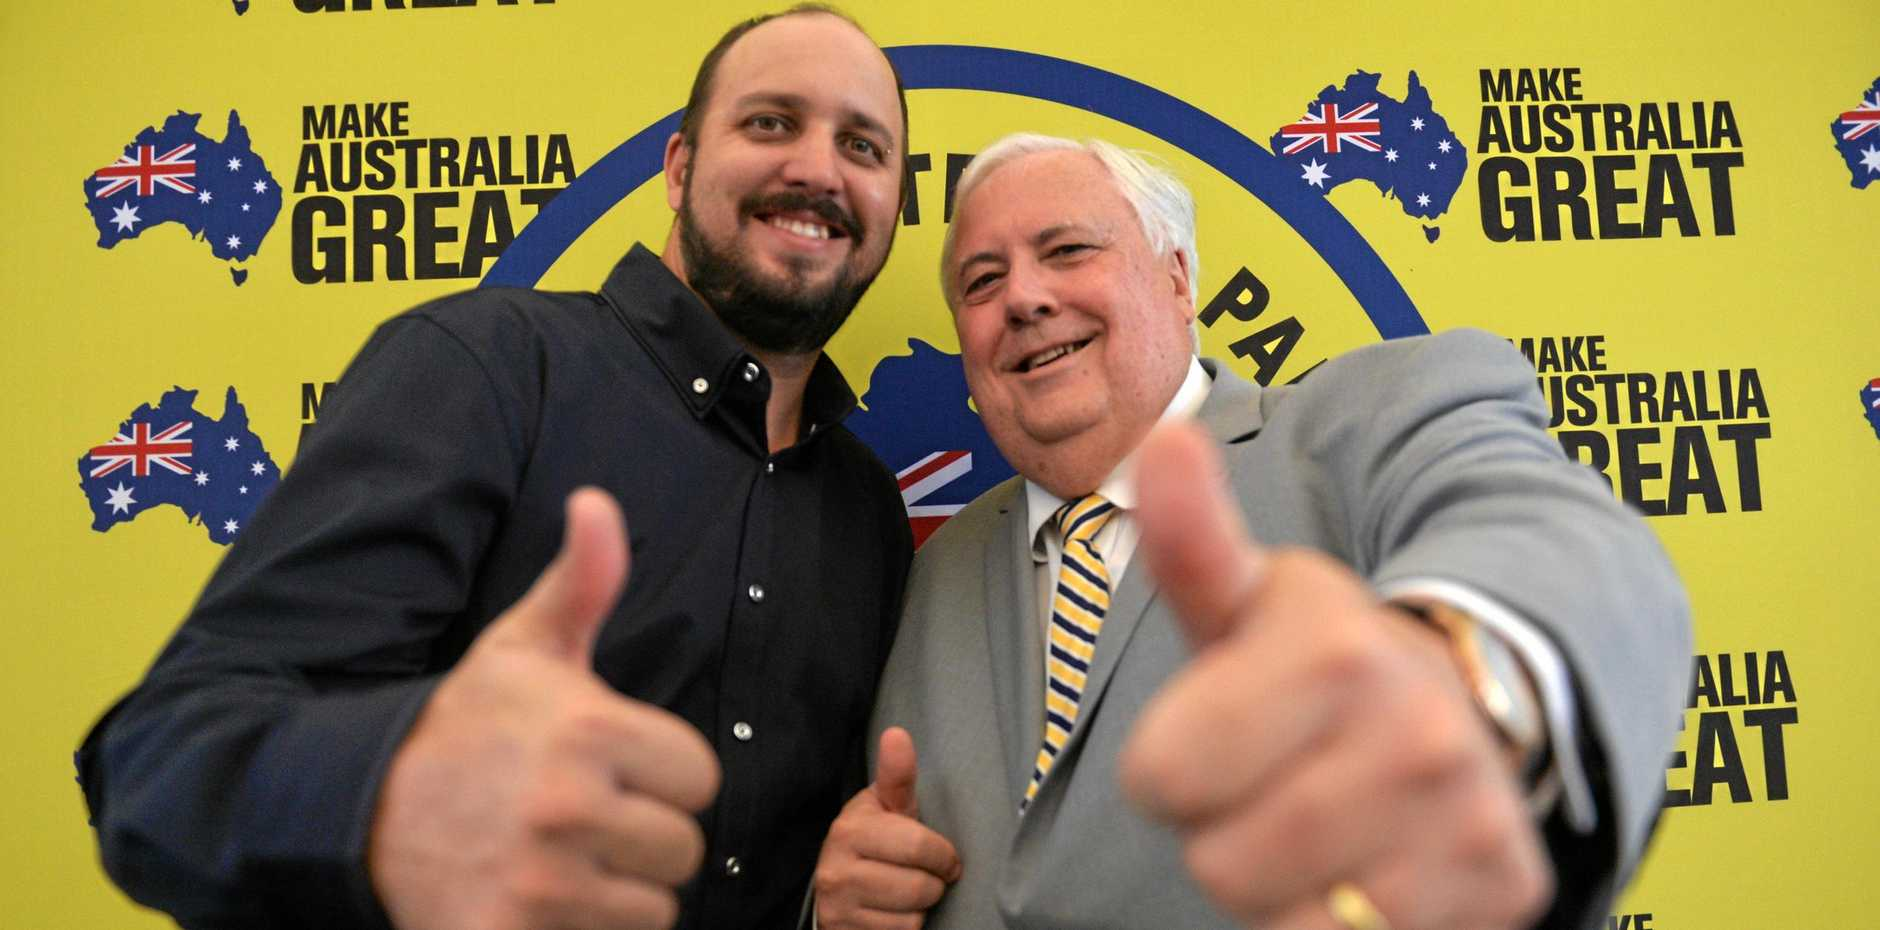 United Australia Party Capricornia candidate Lindsay Sturgeon with party leader and founder Clive Palmer.